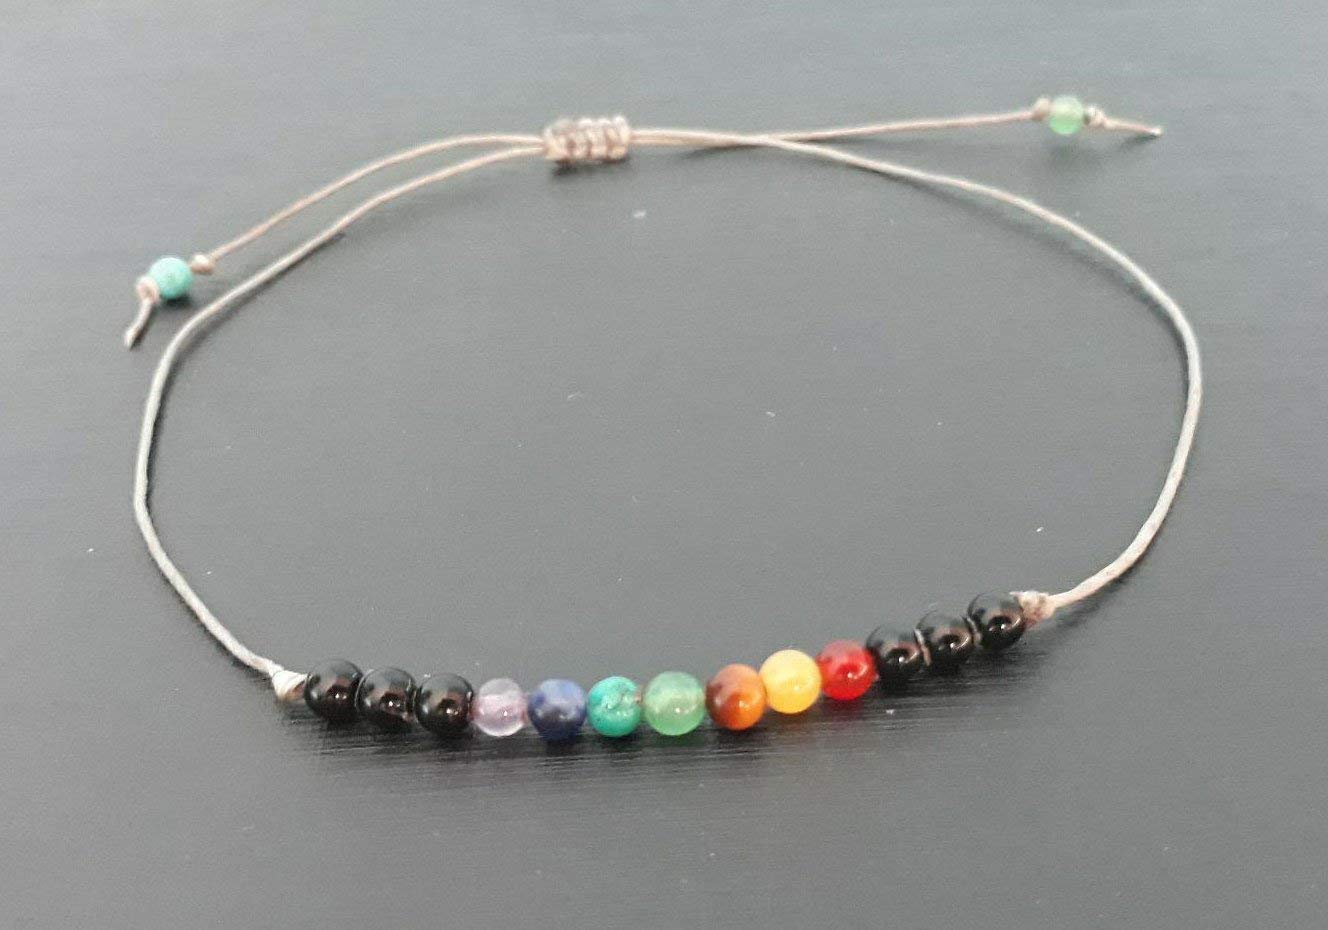 Chakra anklets,stone anklets,multi color stone anklets,men anklets,women anklets,men anklets,women anklets,friendship anklets,fashion anklet